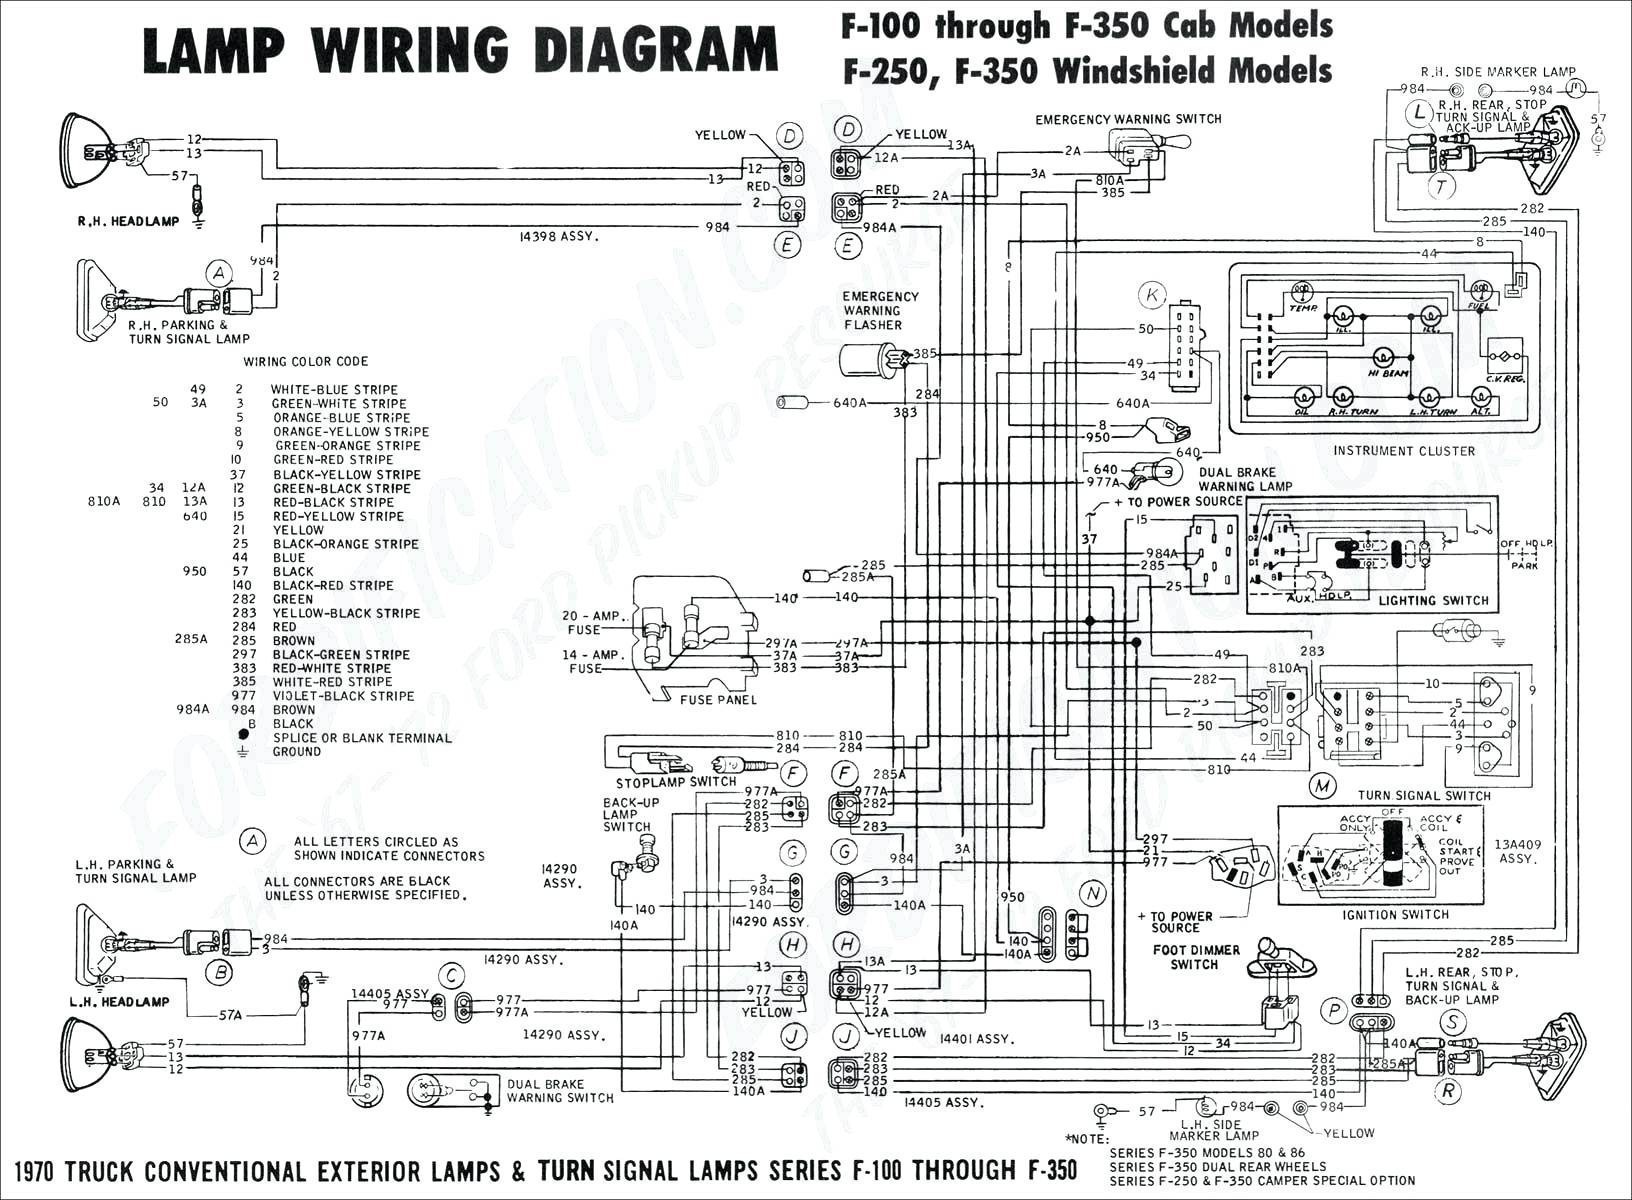 1996 toyota Tercel Engine Diagram 96 Monte Carlo Wiring Diagram Worksheet and Wiring Diagram • Of 1996 toyota Tercel Engine Diagram